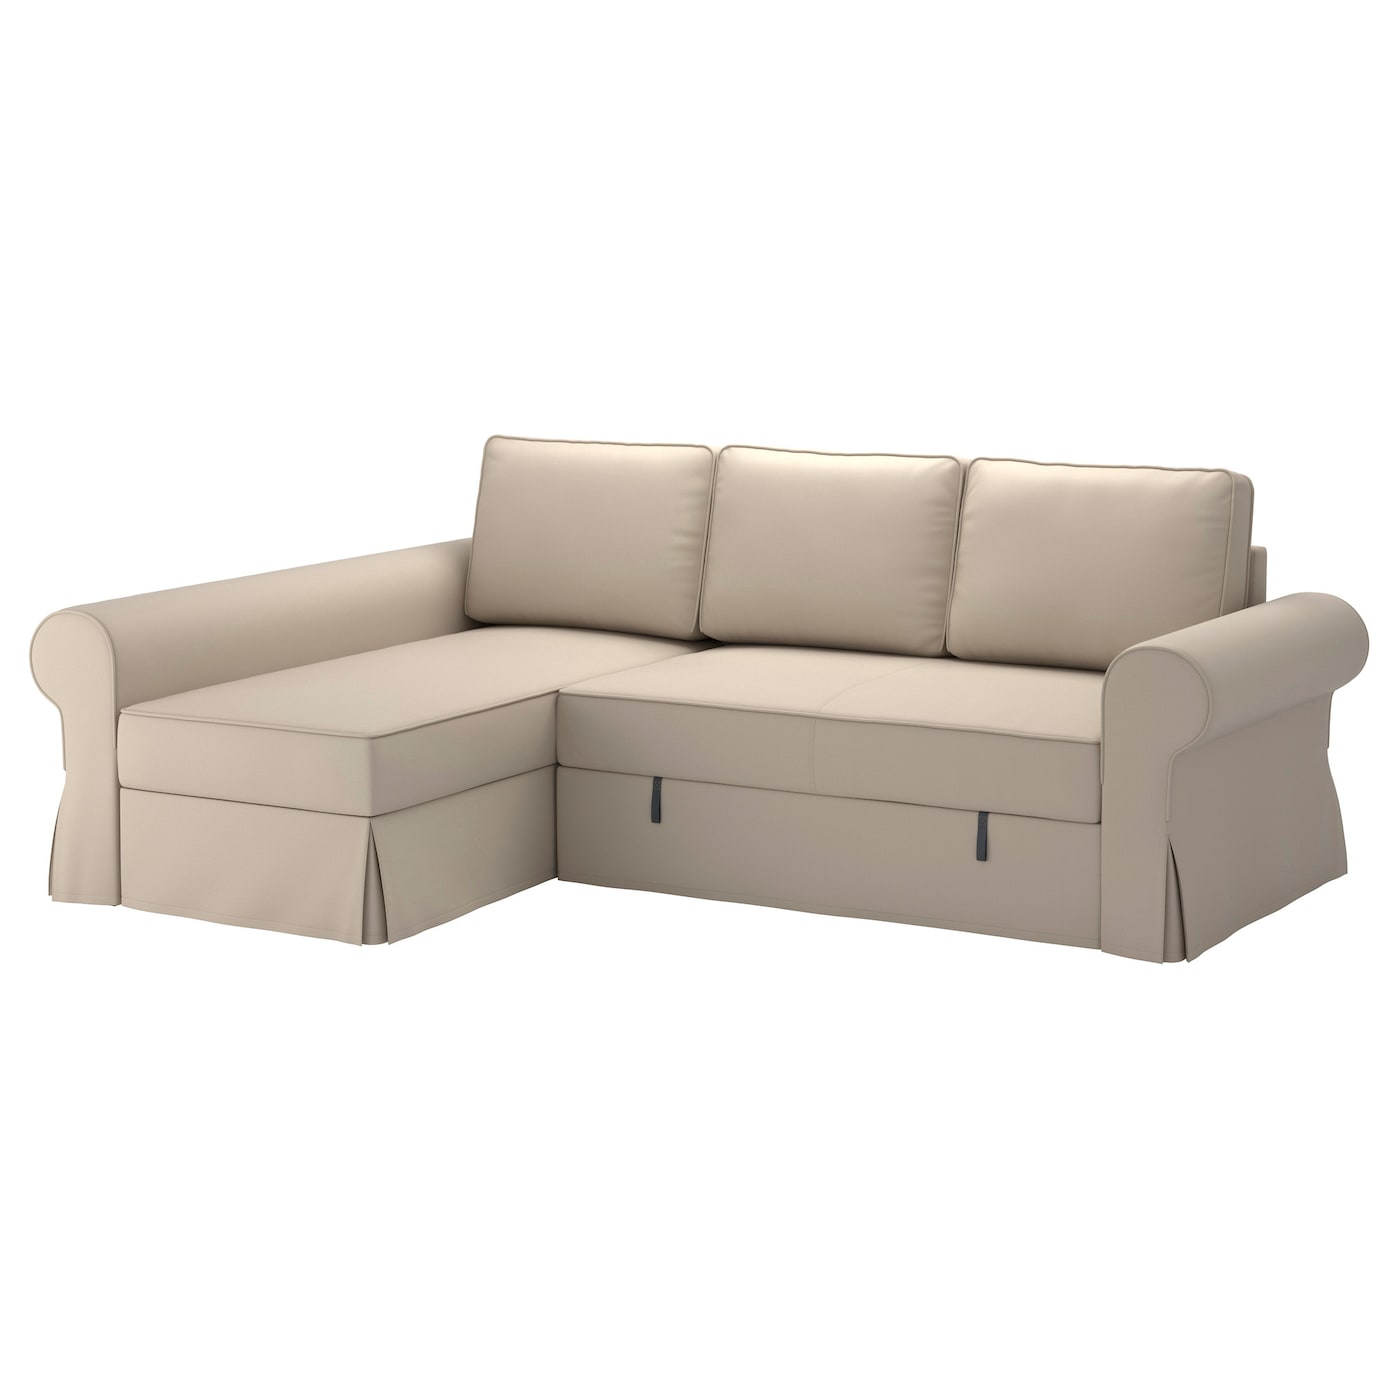 Backabro cover sofa bed with chaise longue ramna beige ikea for Sofa bed cover